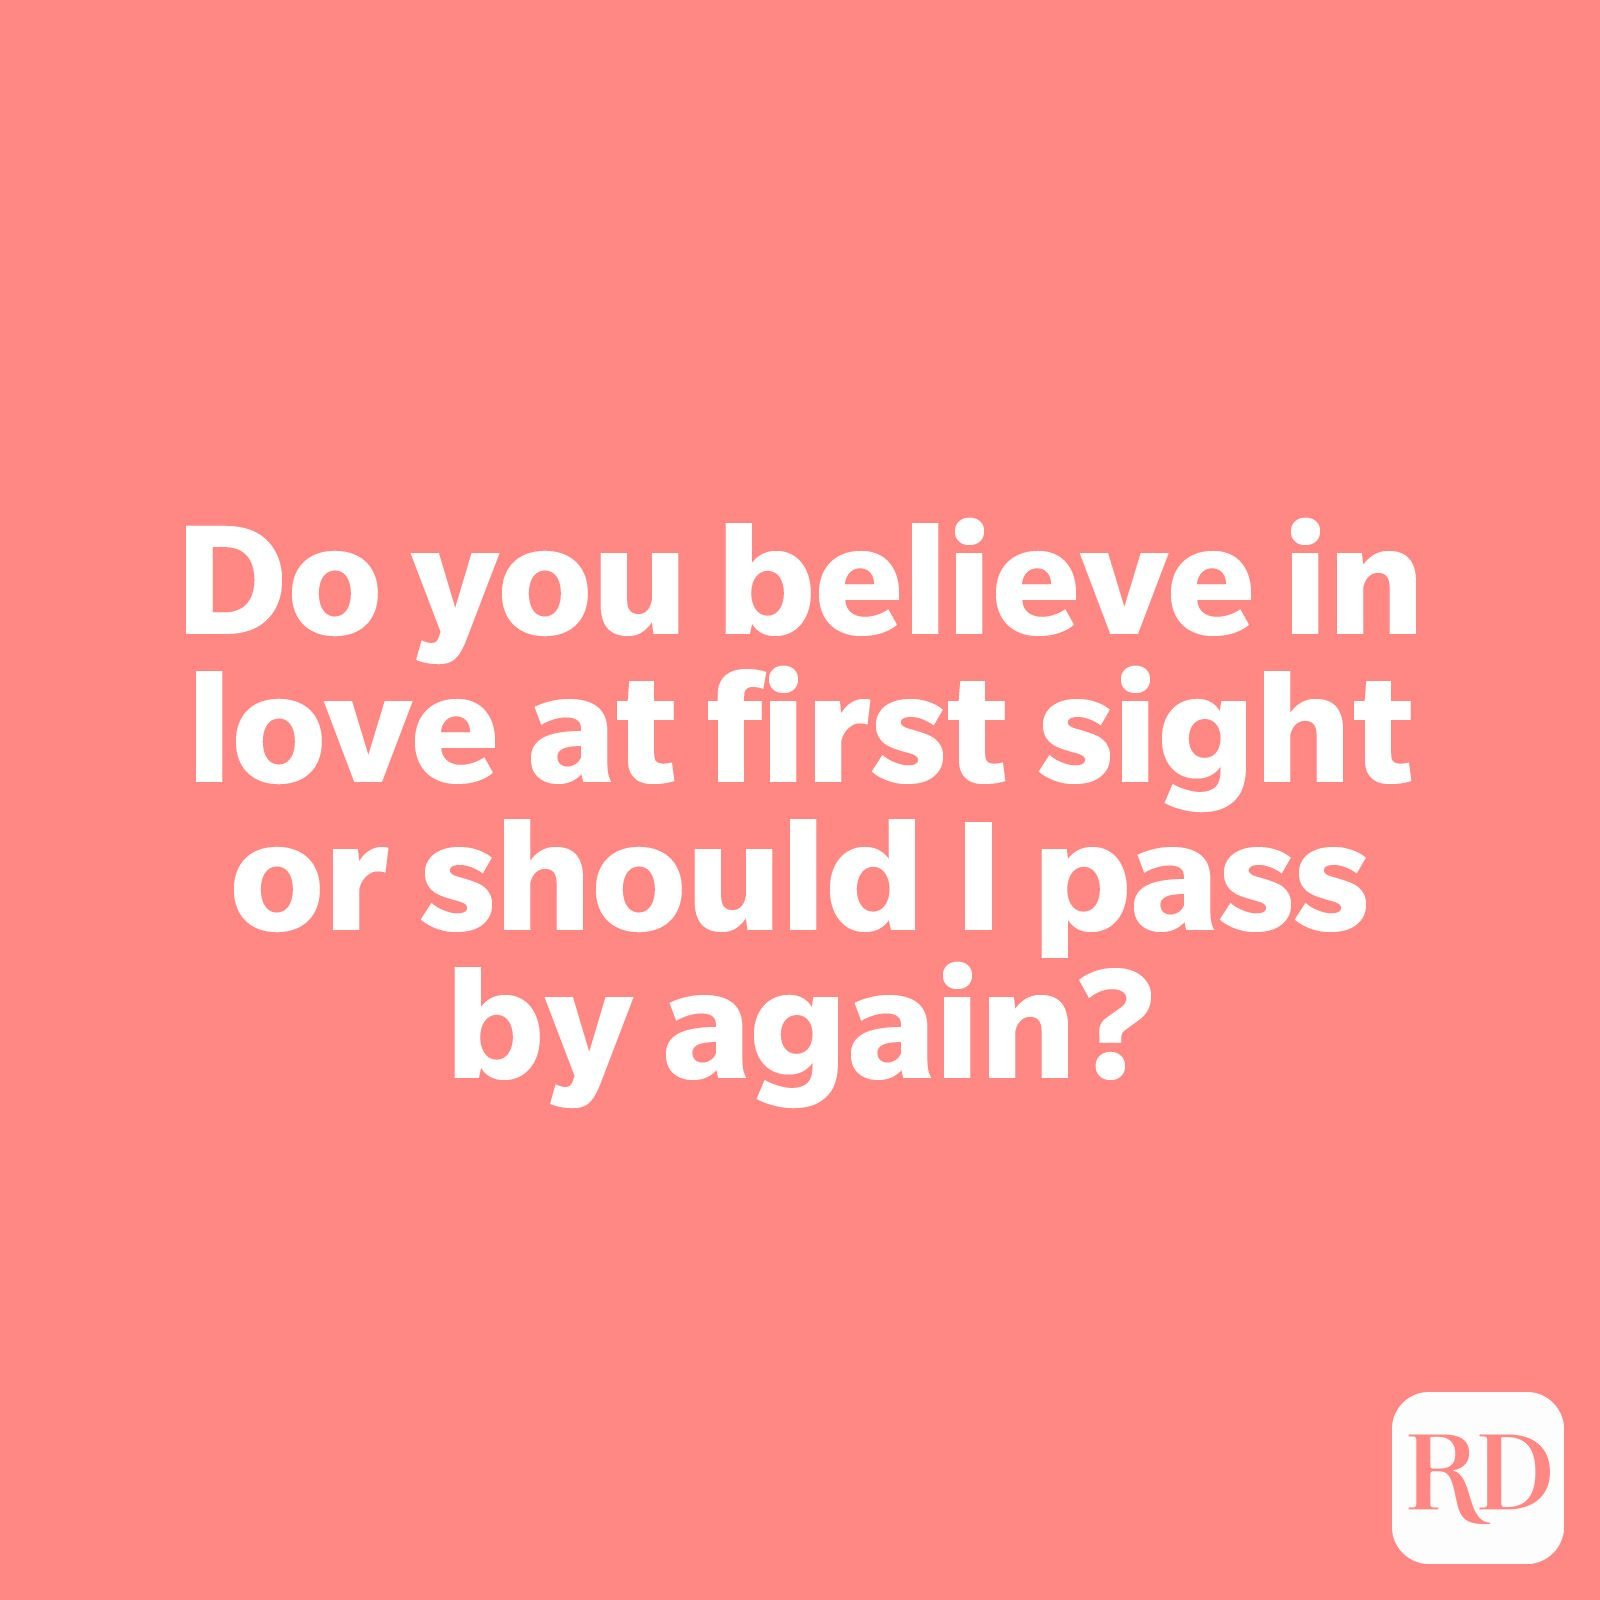 Do you believe in love at first sight or should I pass by again?